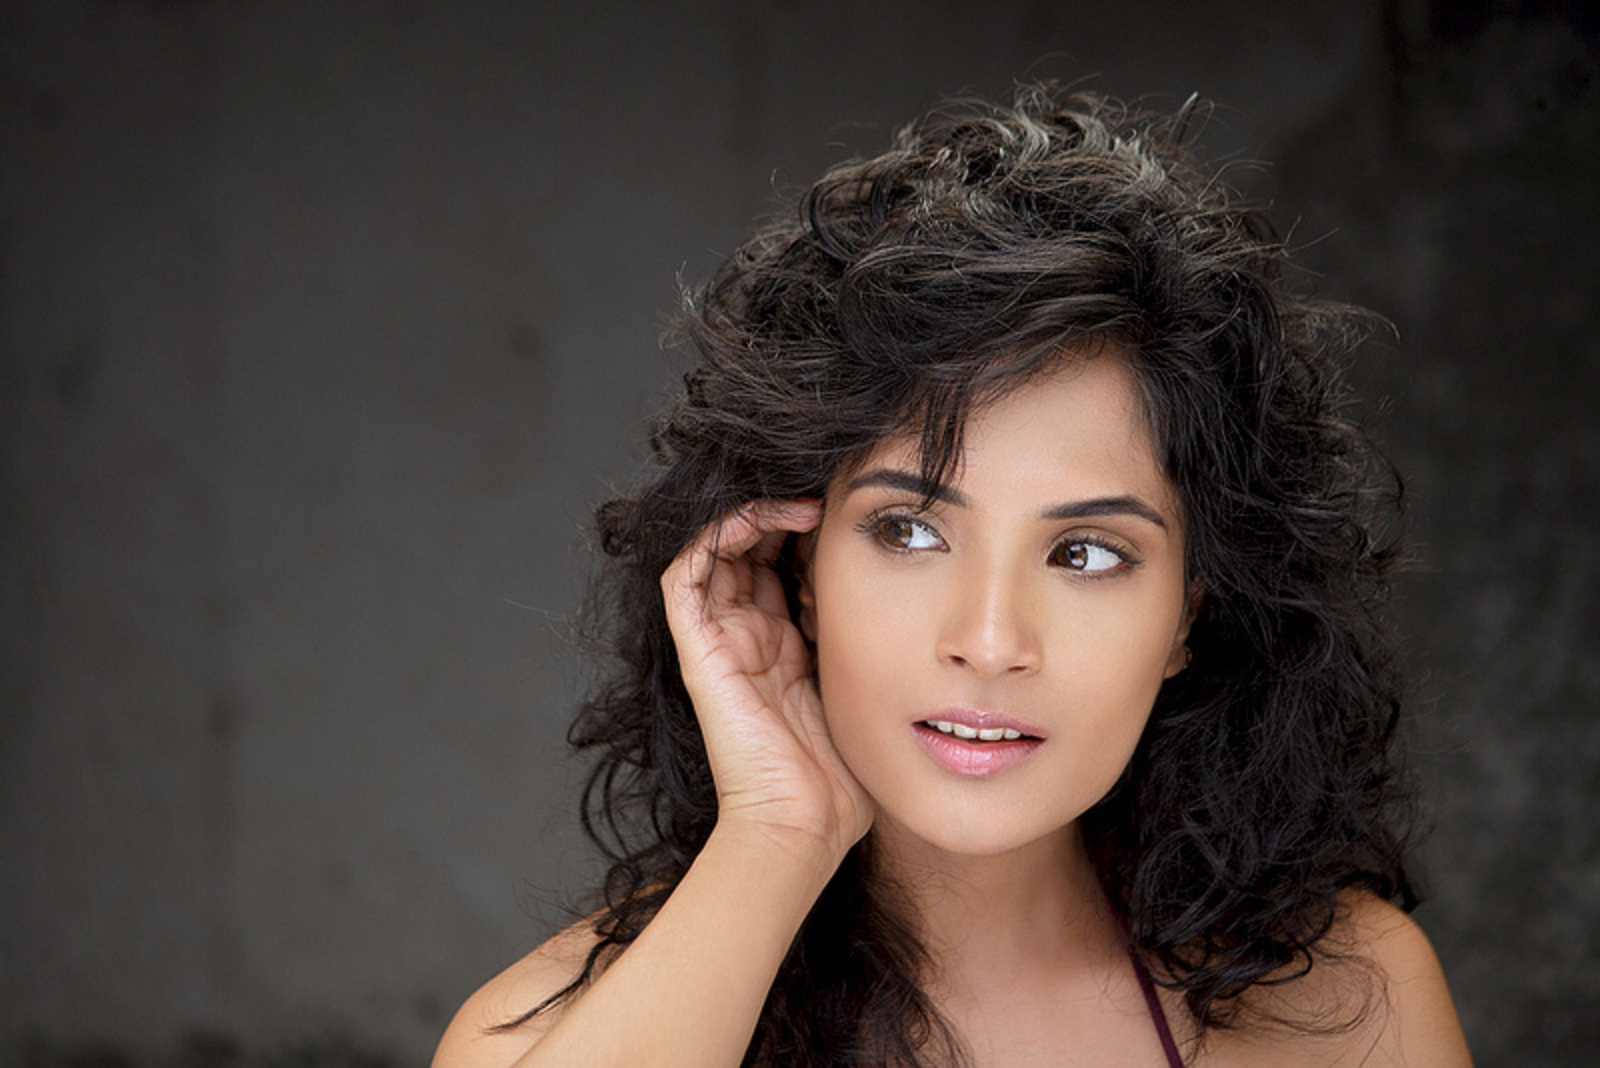 richa chadda wallpapers free download | indian hd wallpaper free